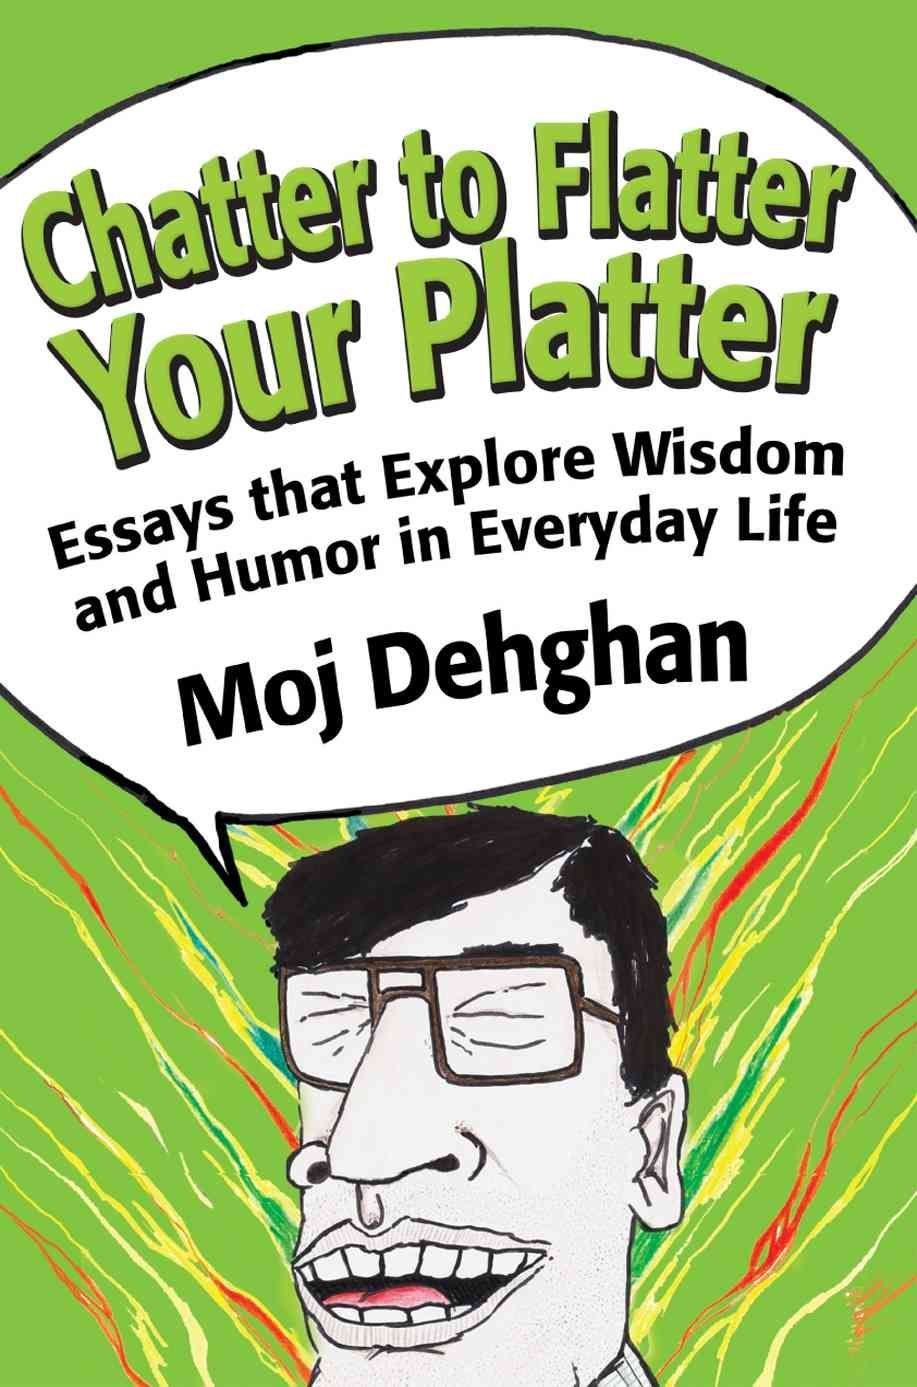 Chatter to Flatter Your Platter - Moj Dehghan